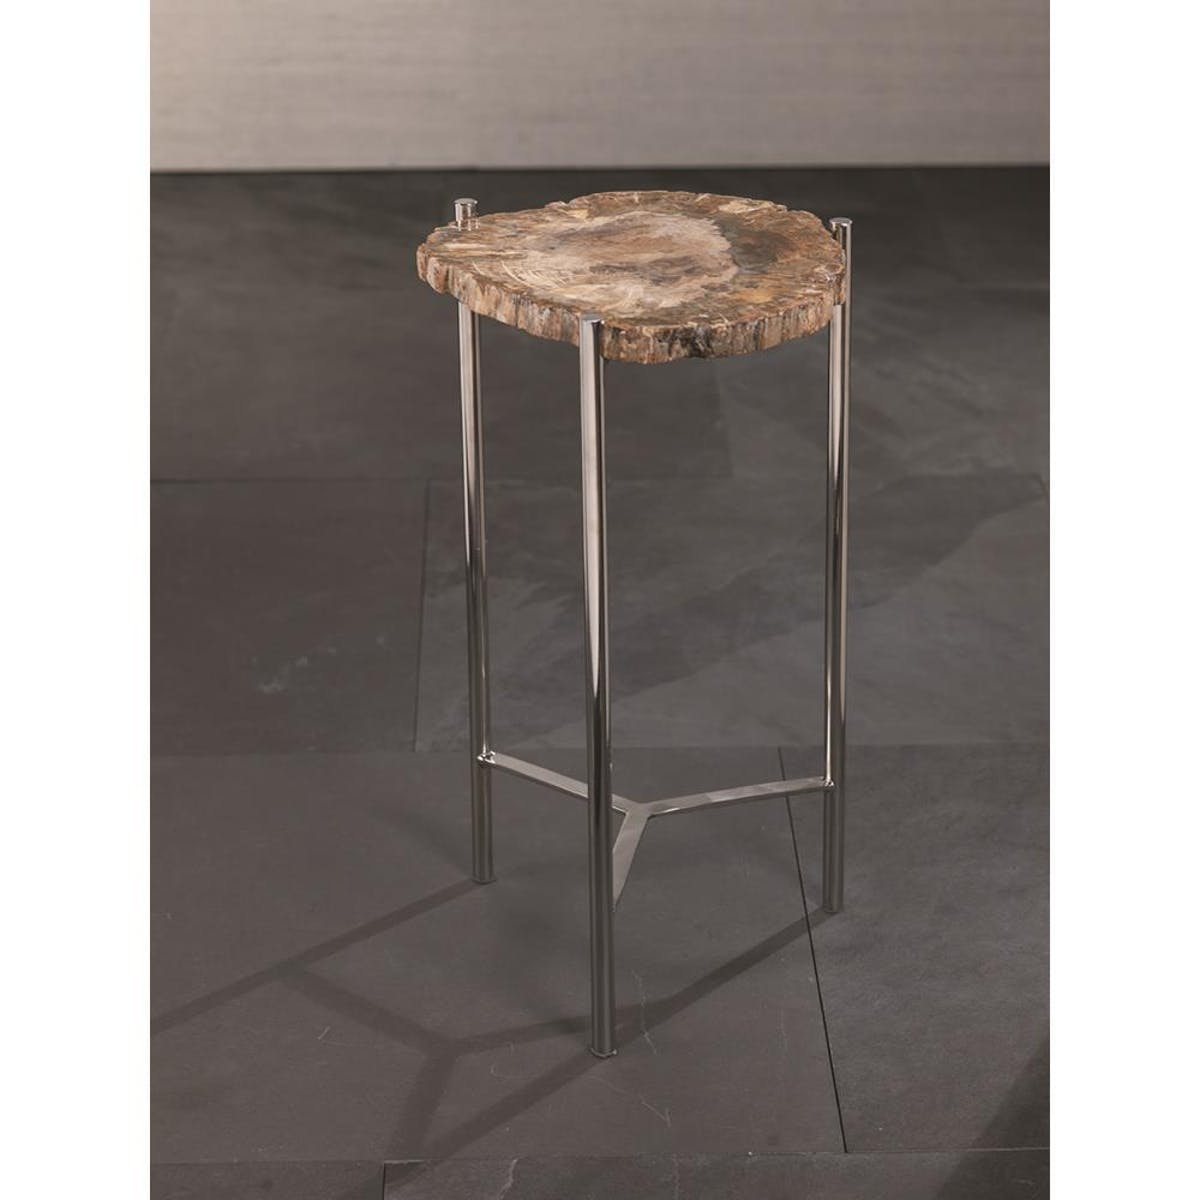 zodax pierce petrified wood accent table inch tall modish gray tap expand champagne mirrored furniture painted coffee ideas unique home perspex occasional tables black and grey